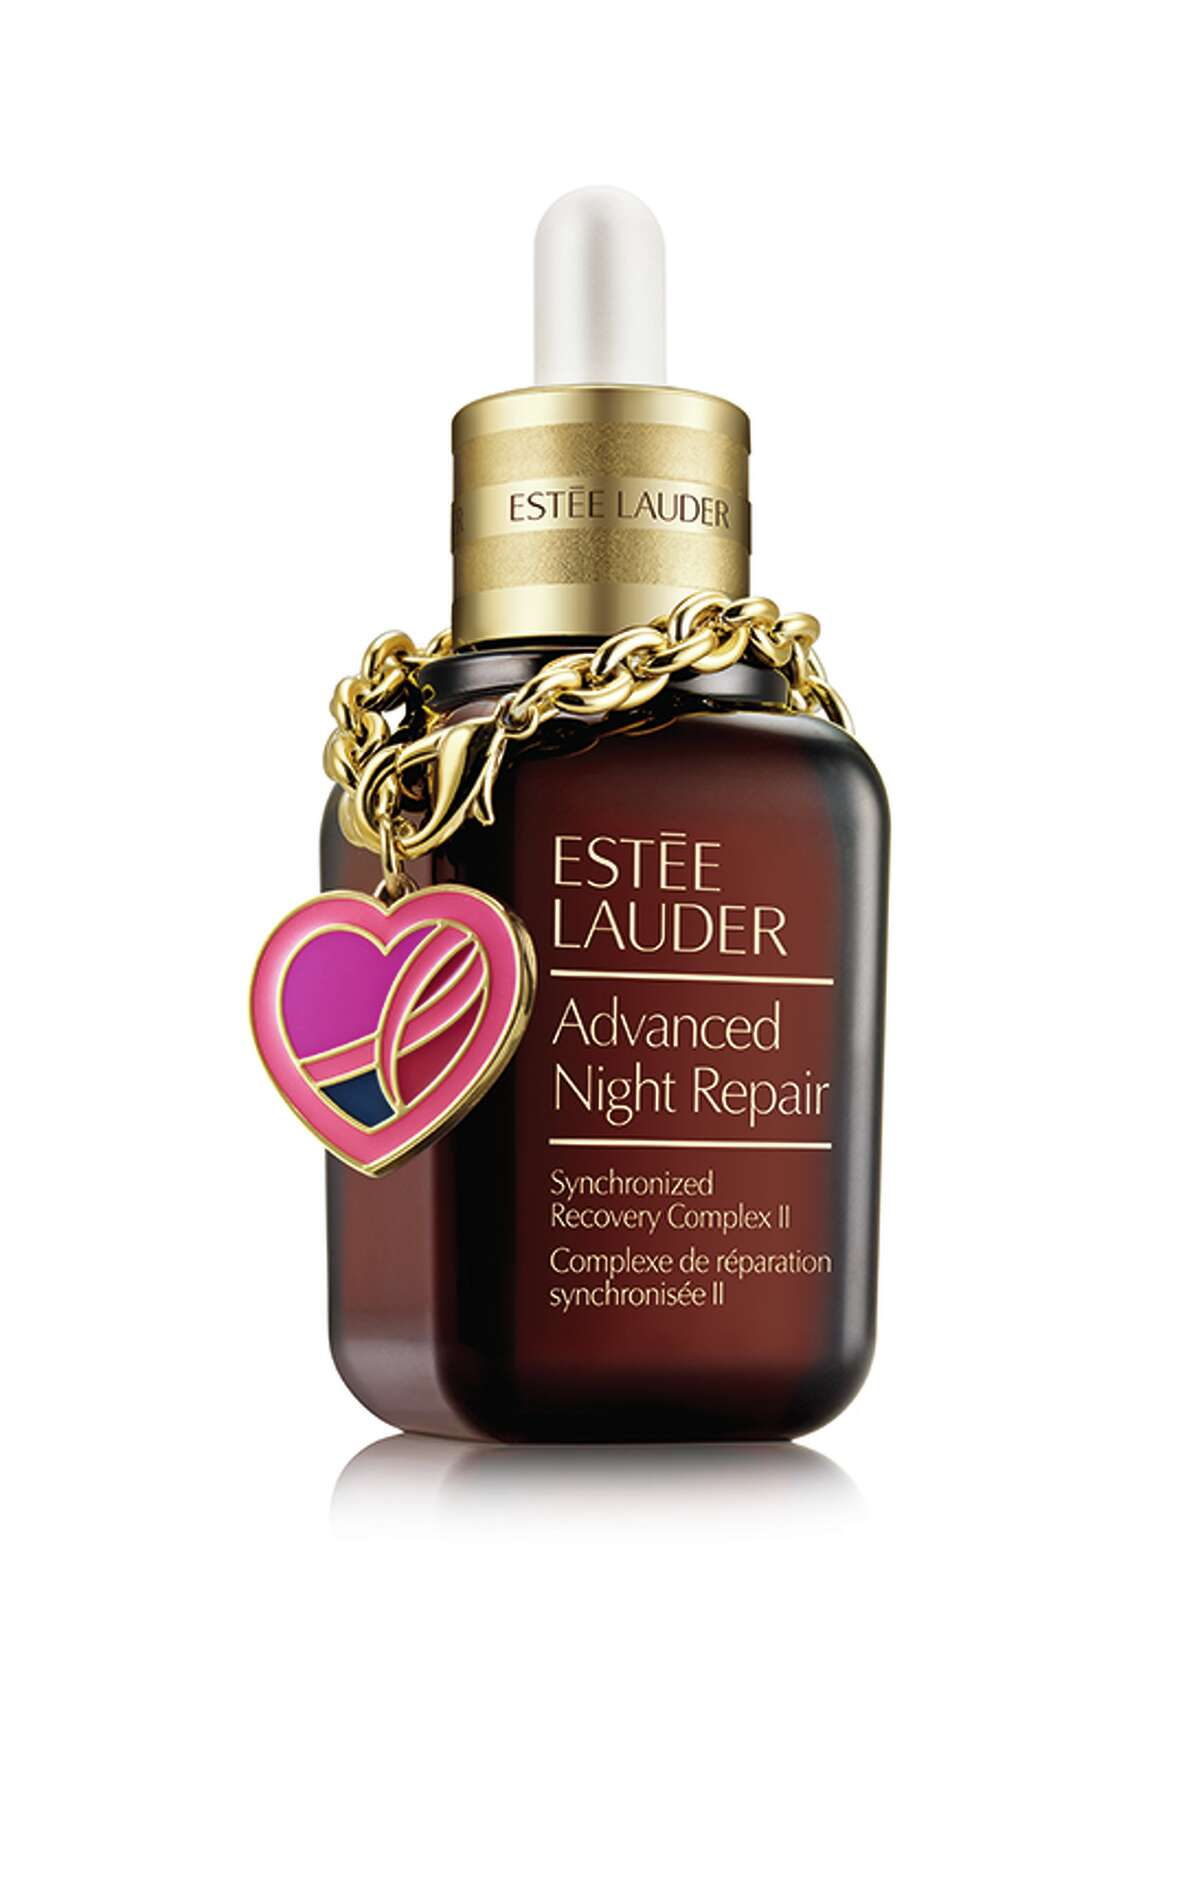 OVERNIGHT SUCCESS Looking for a great reason to splurge on yourself? Bottles of Estée Lauder Advanced Night Repair Synchronized Recovery Complex II sold with a limited edition pink ribbon charm bracelet will give 20 percent of the retail price to the Breast Cancer Research Foundation; $92 at Macy's.